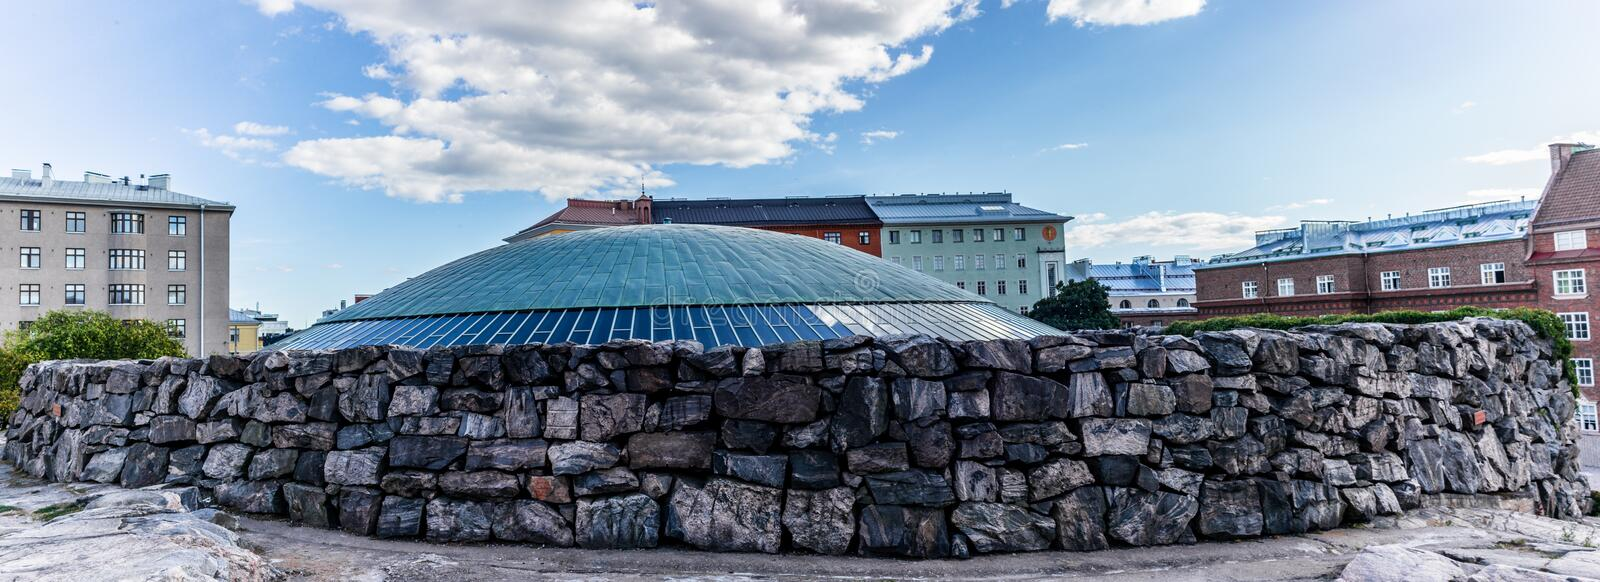 The dome of the church in the rock in Helsinki - 1 royalty free stock photo